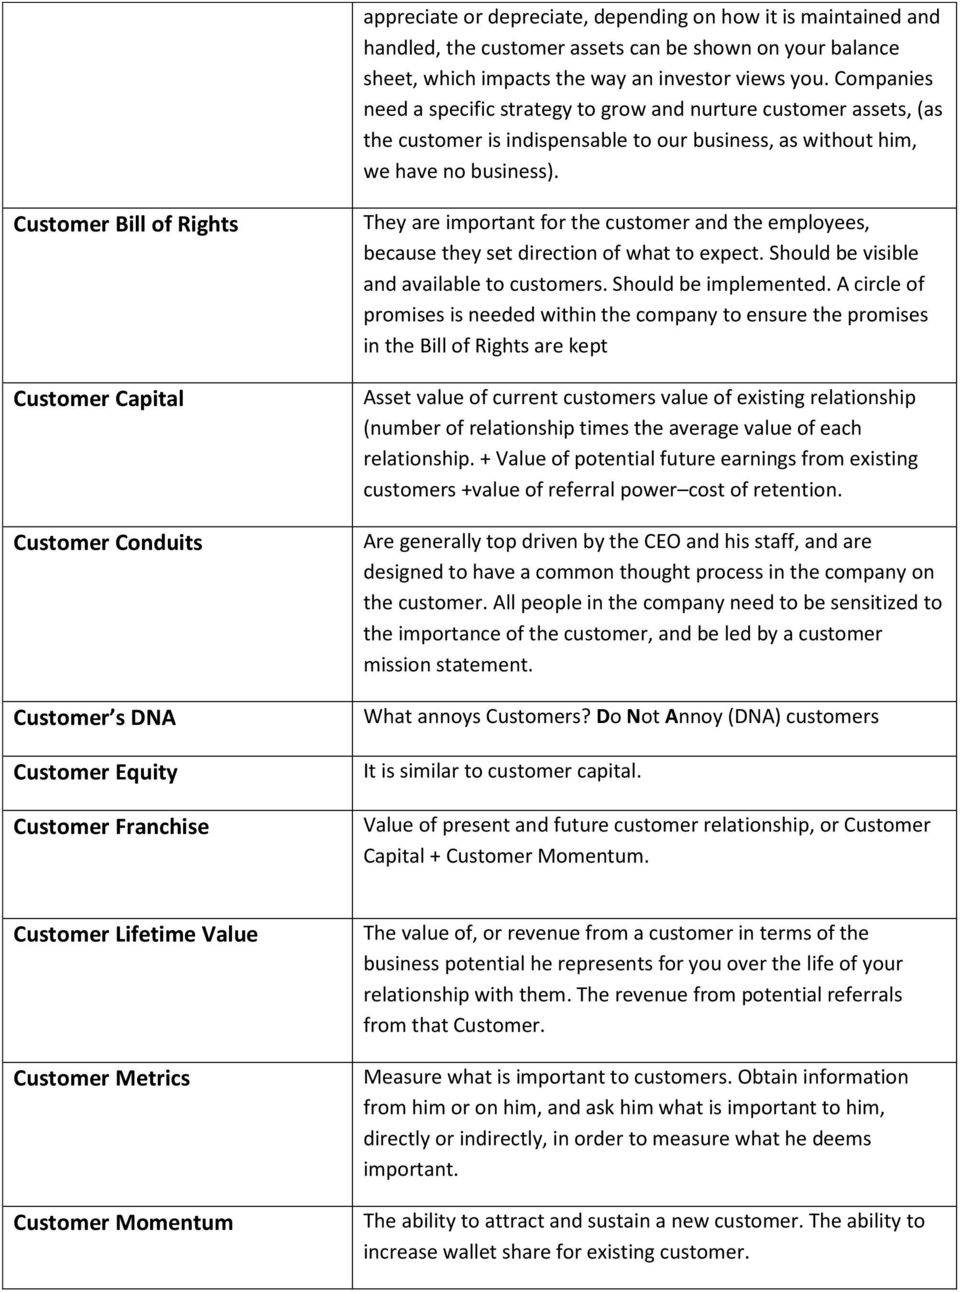 Customer Bill of Rights Customer Capital Customer Conduits Customer s DNA Customer Equity Customer Franchise They are important for the customer and the employees, because they set direction of what